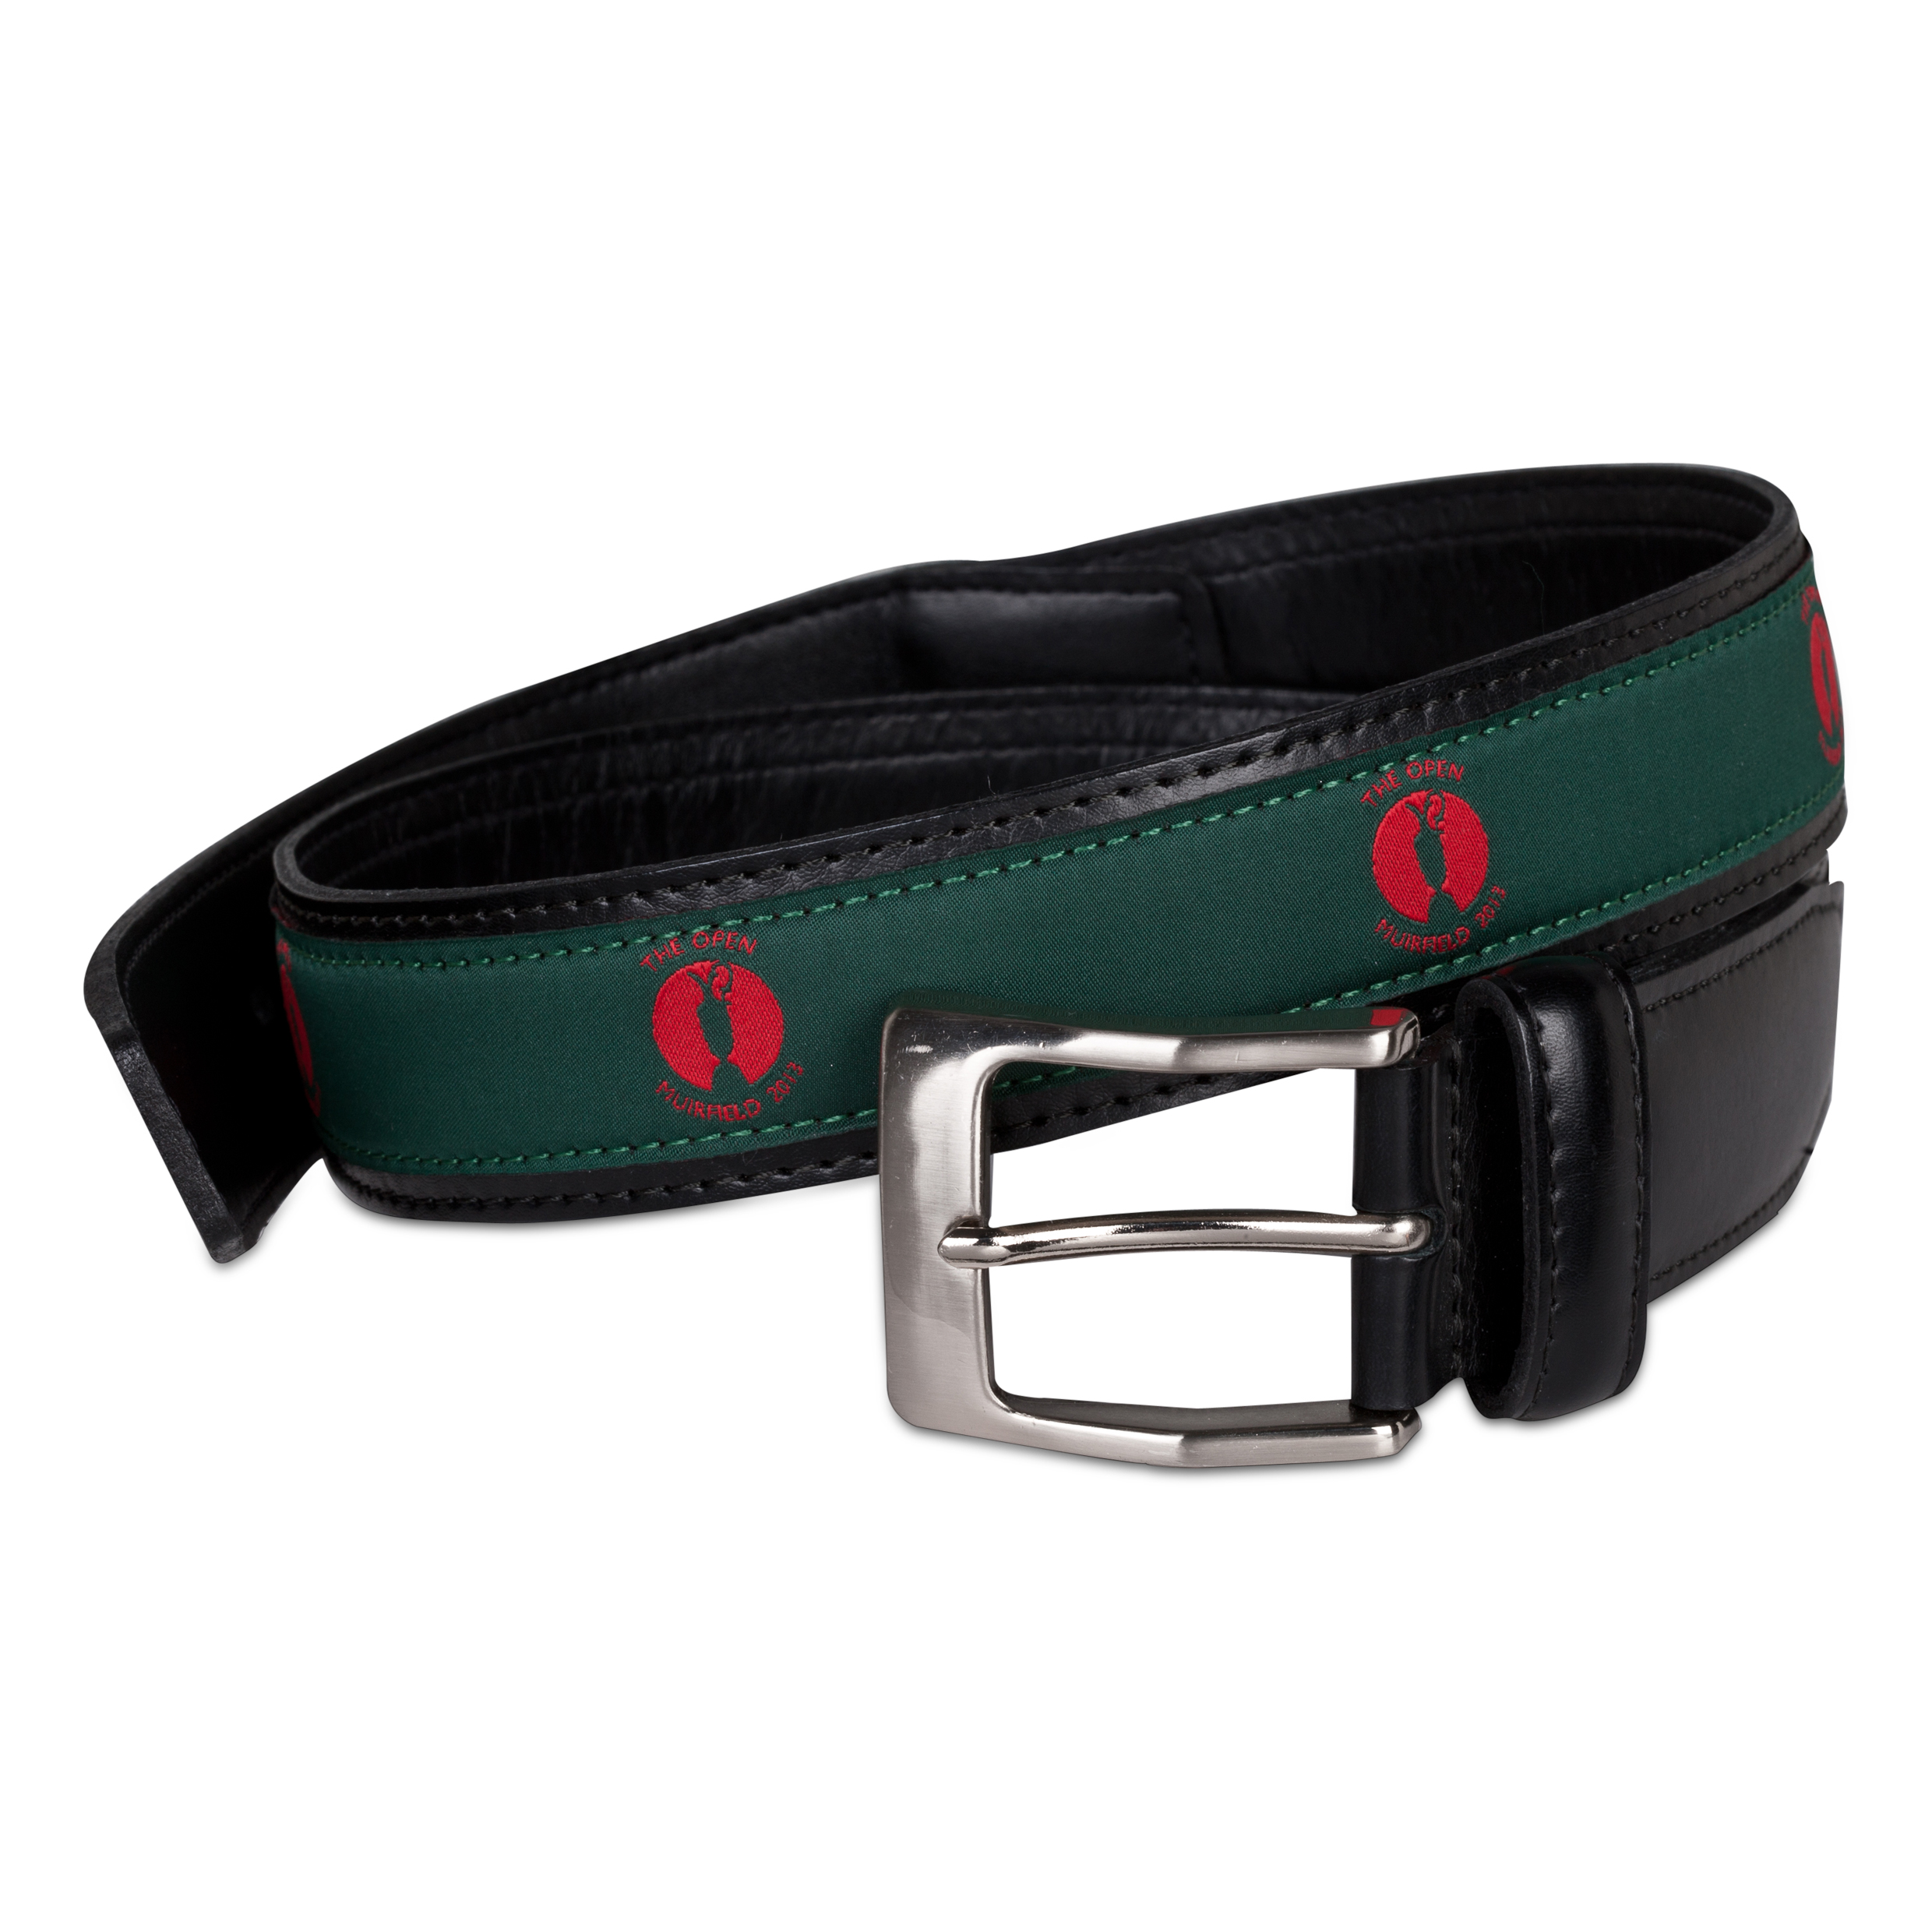 The Open Championship Muirfield Leather Belt - Green/Red Ribbon Green